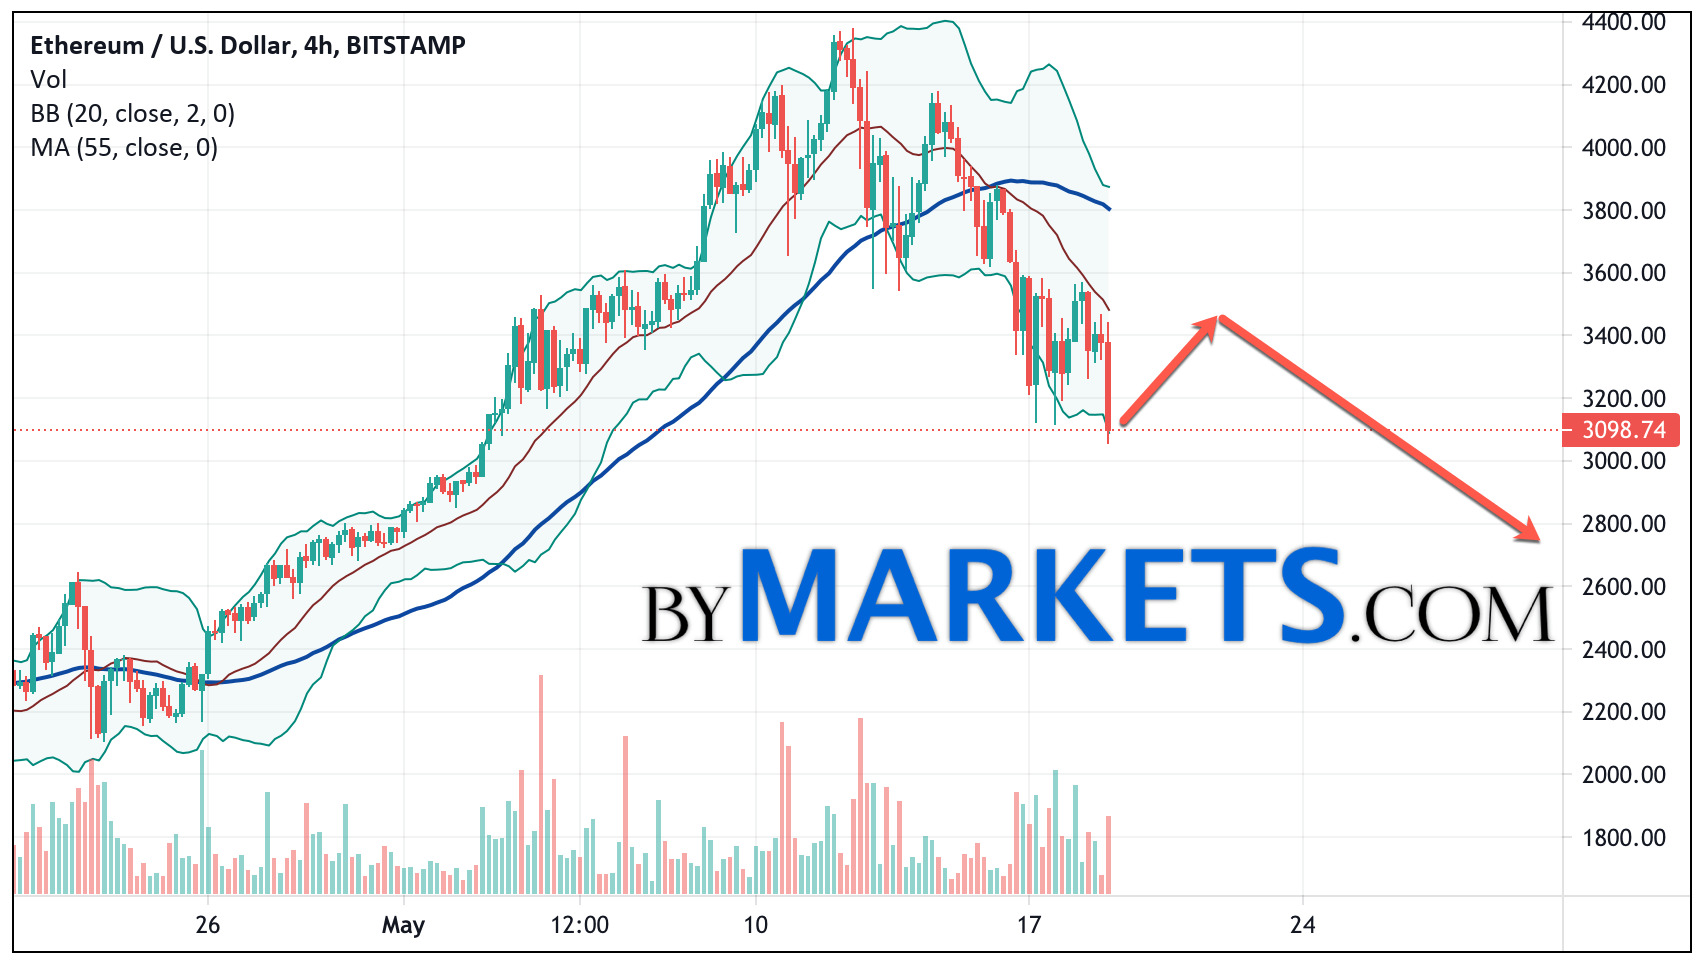 Ethereum (ETH/USD) forecast and analysis on May 20, 2021